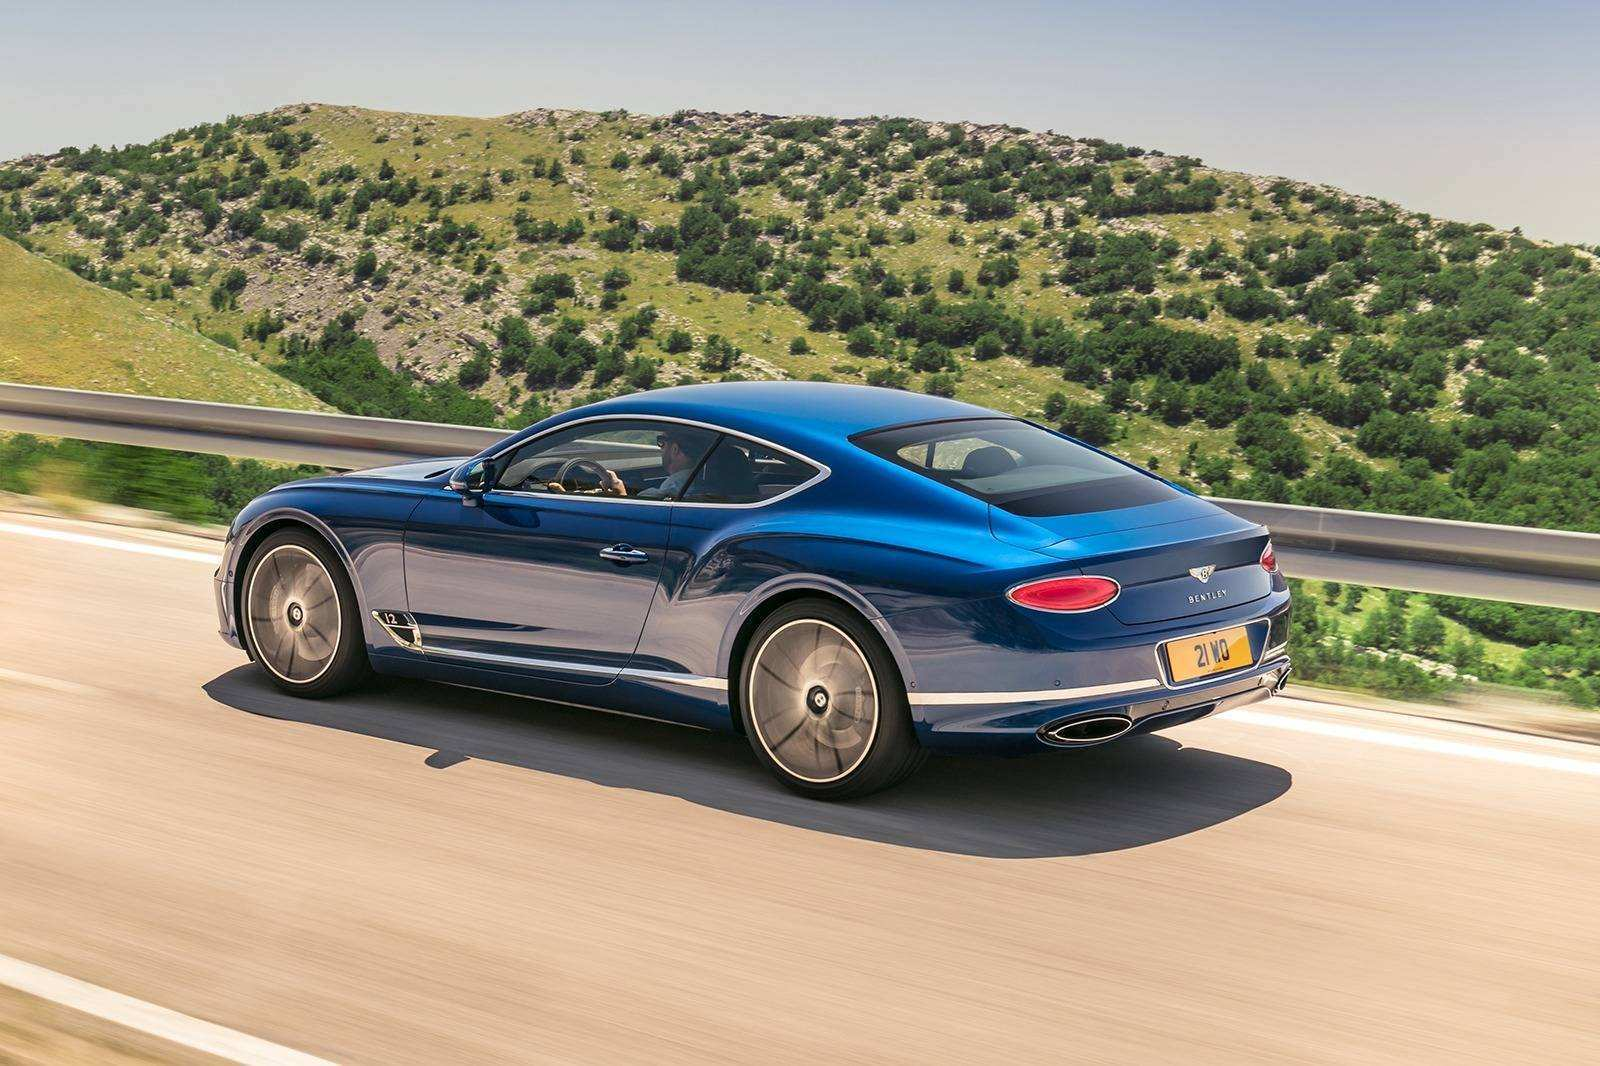 83 New 2019 Bentley Continental Specs And Review